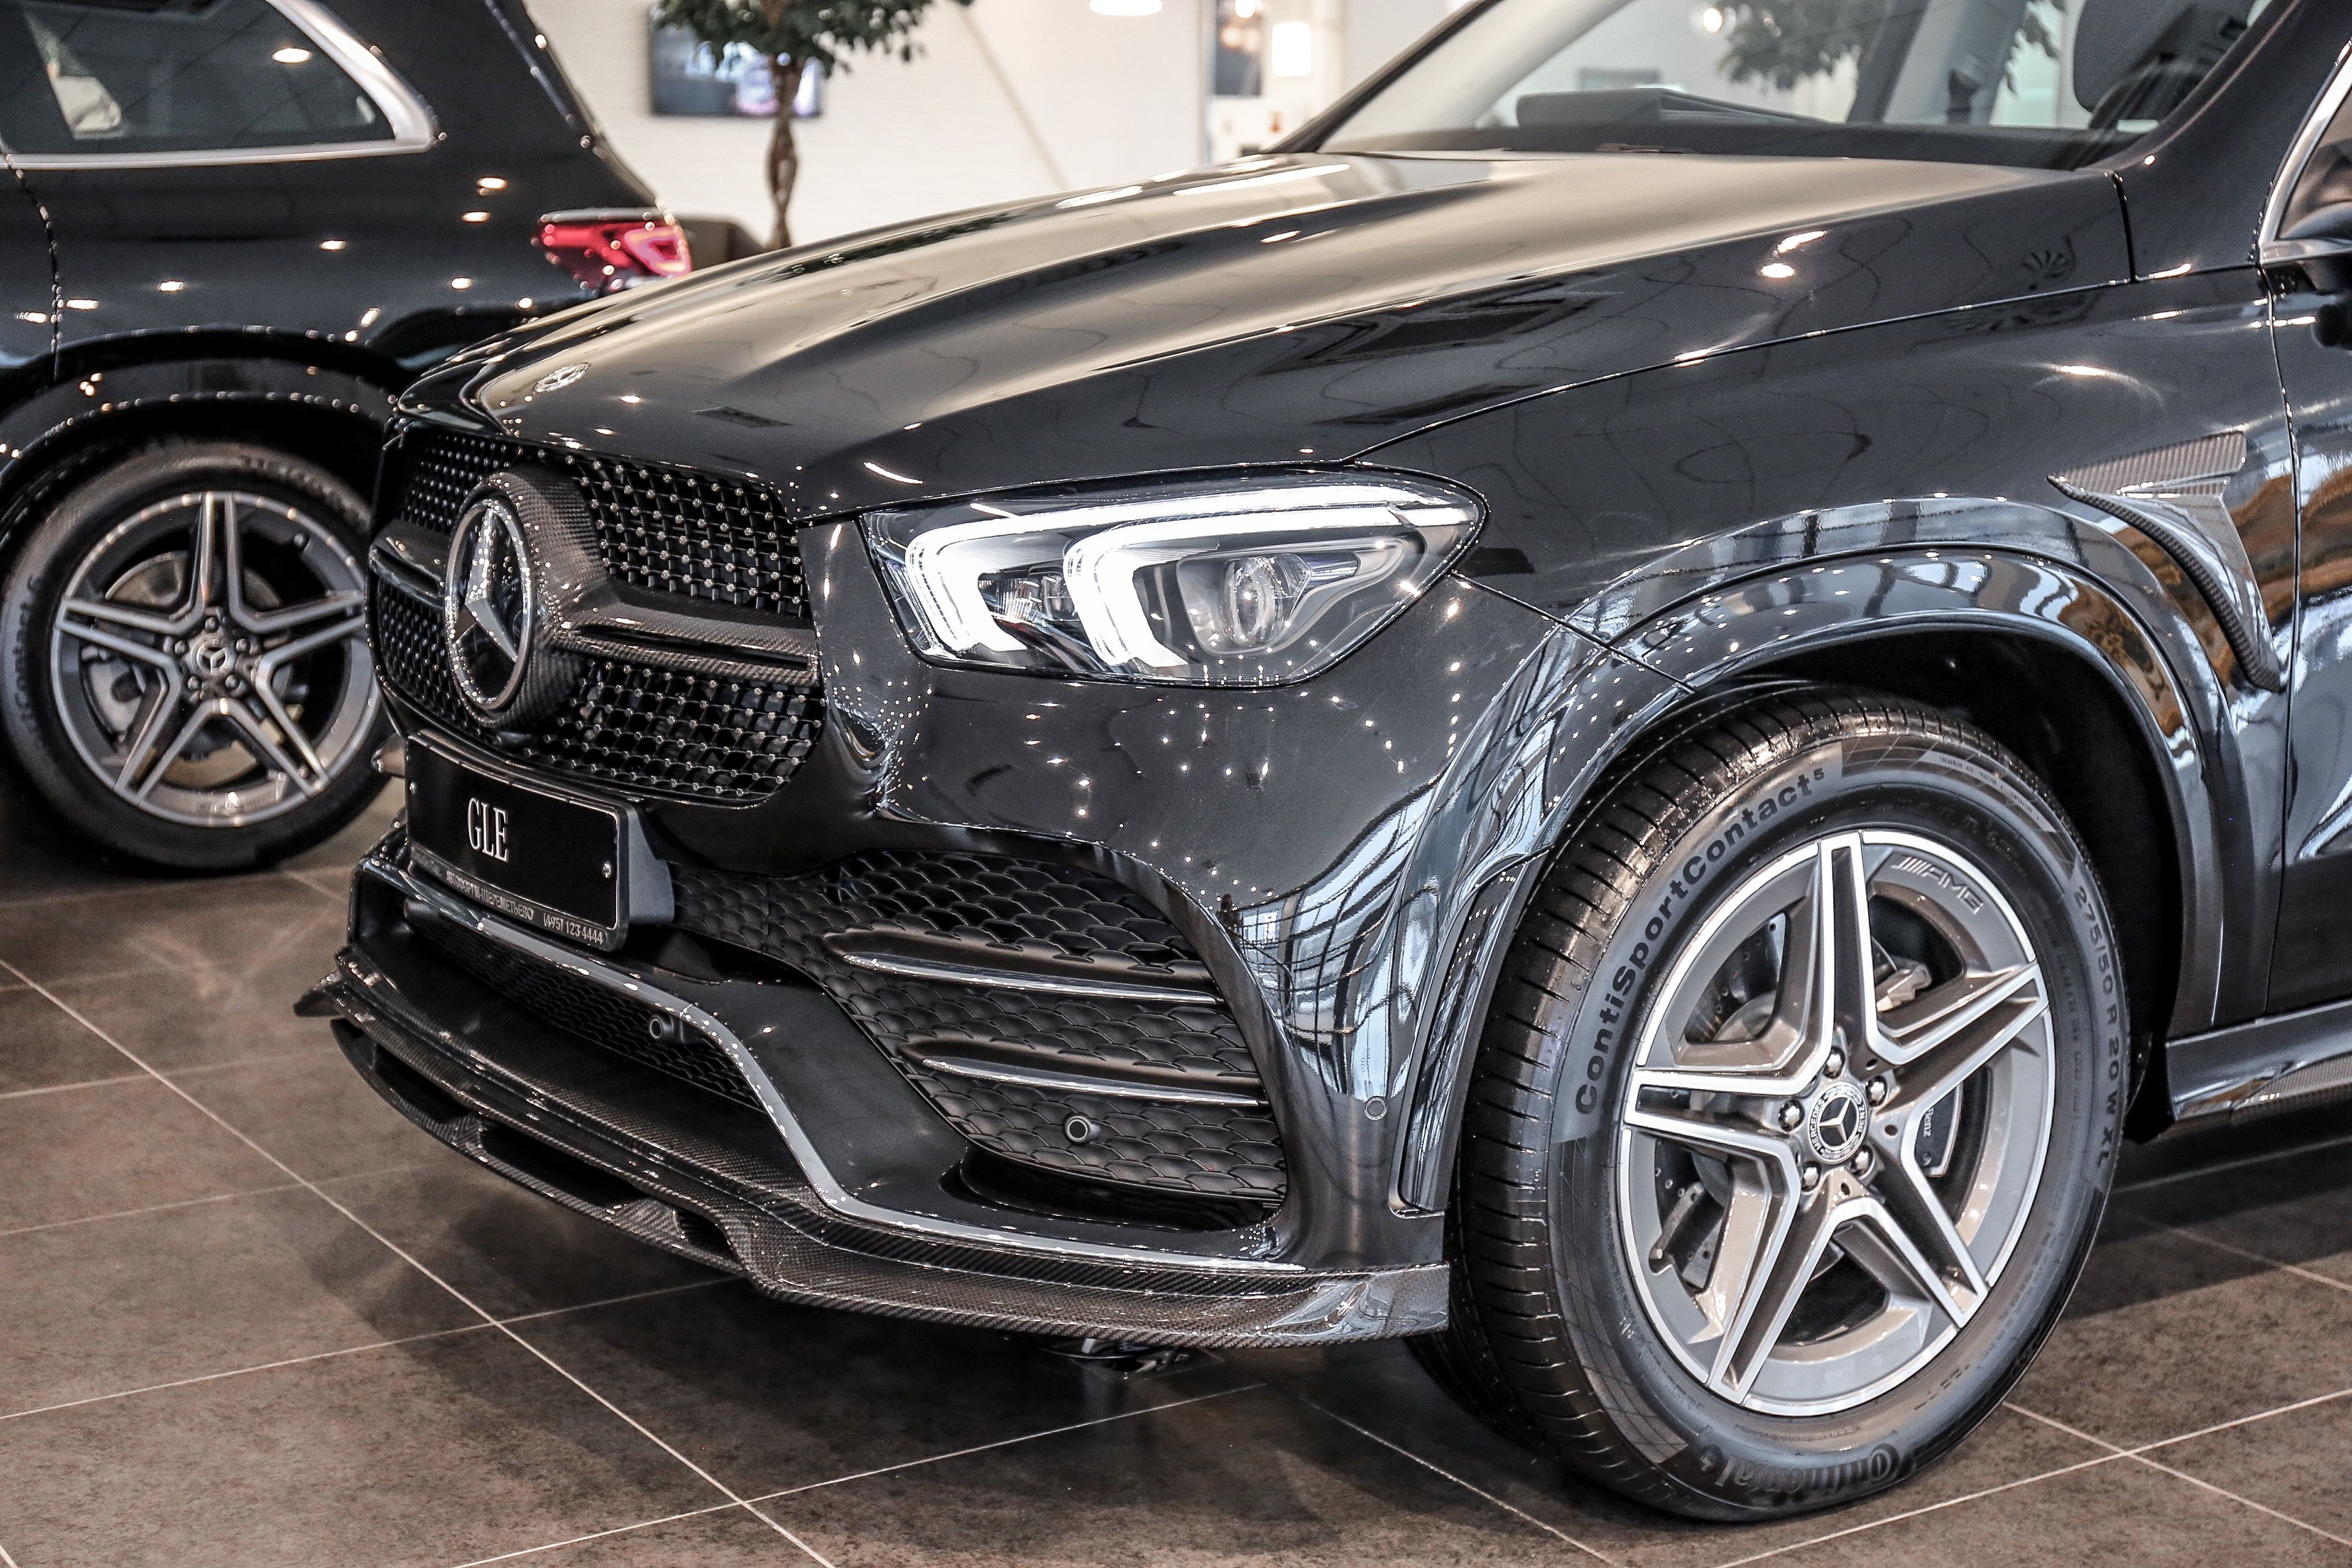 36+ Gle 450 coupe 2020 ideas in 2021